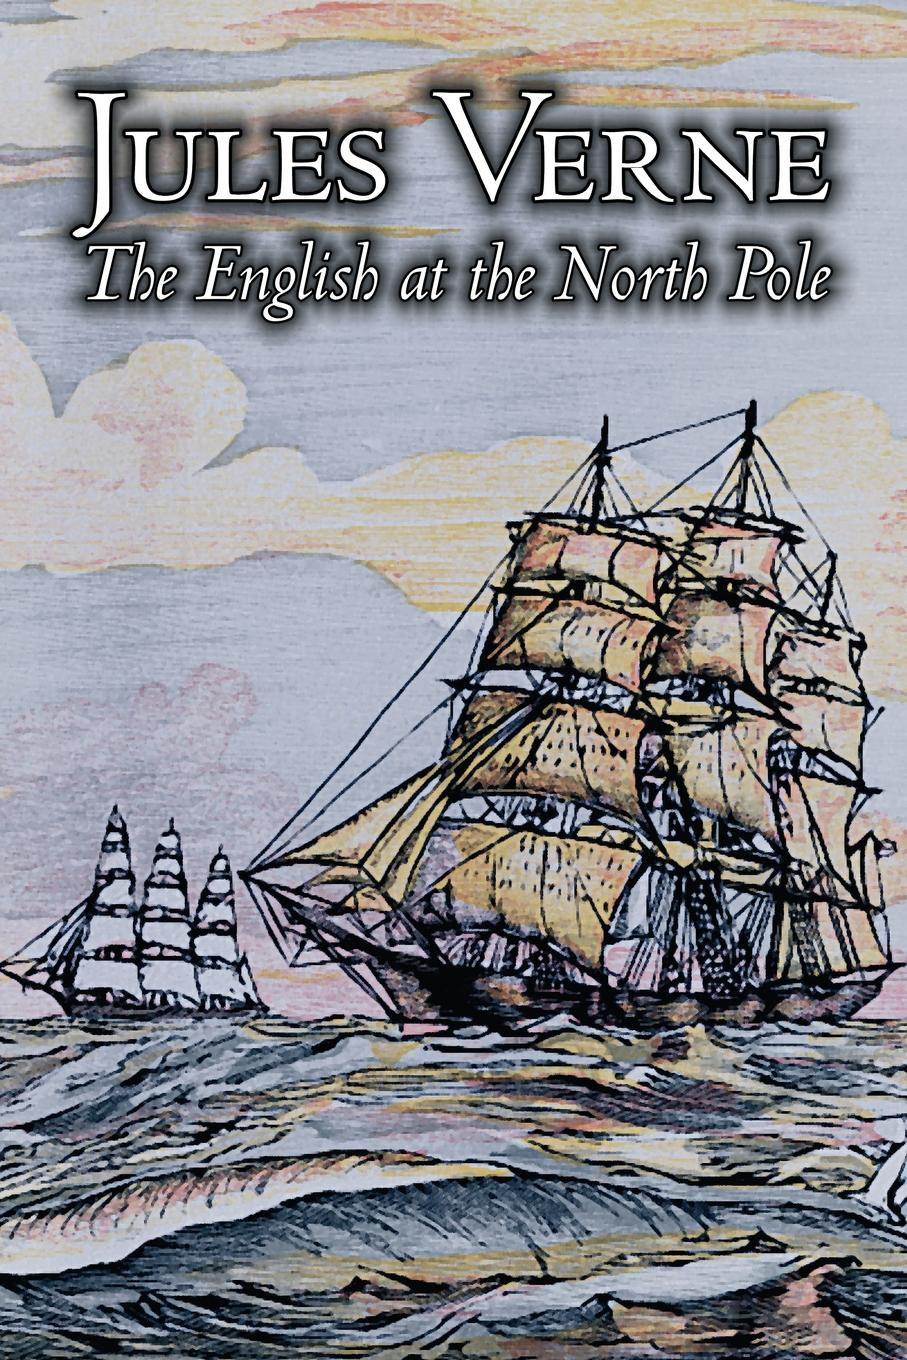 Jules Verne The English at the North Pole by Jules Verne, Fiction, Fantasy & Magic